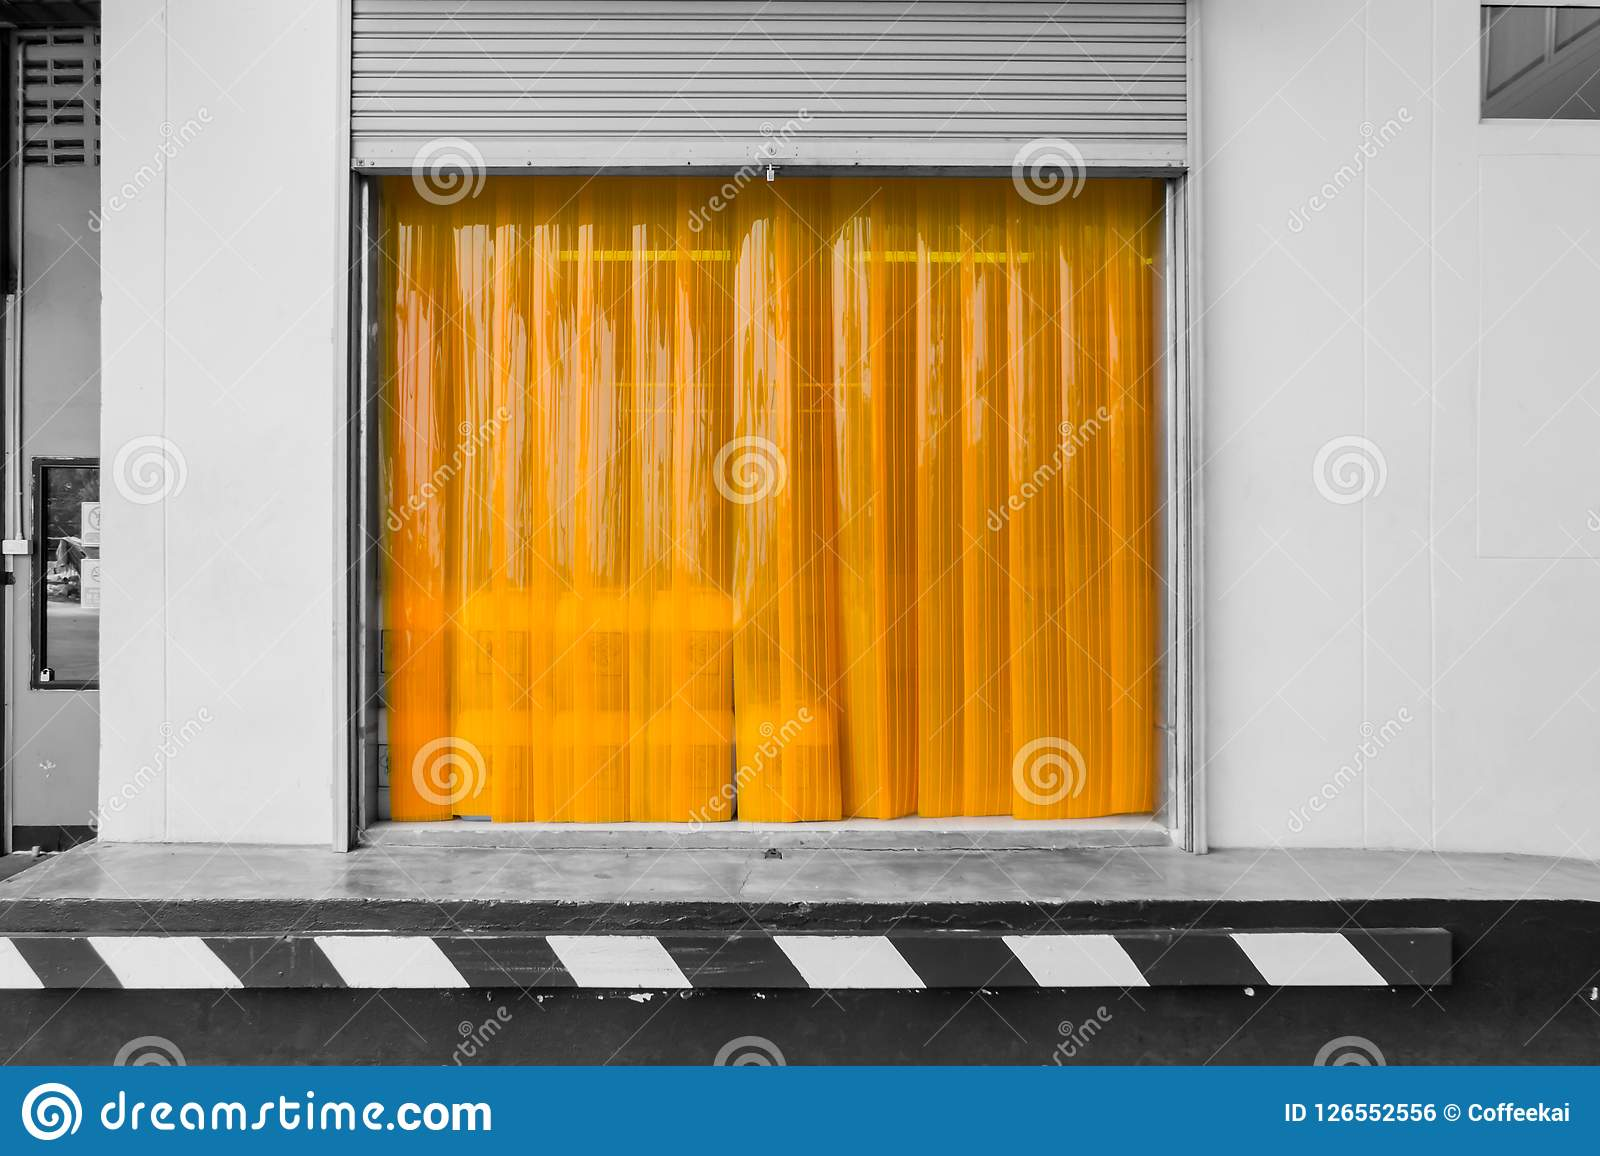 Warehouse gate loading area with PVC strip curtain